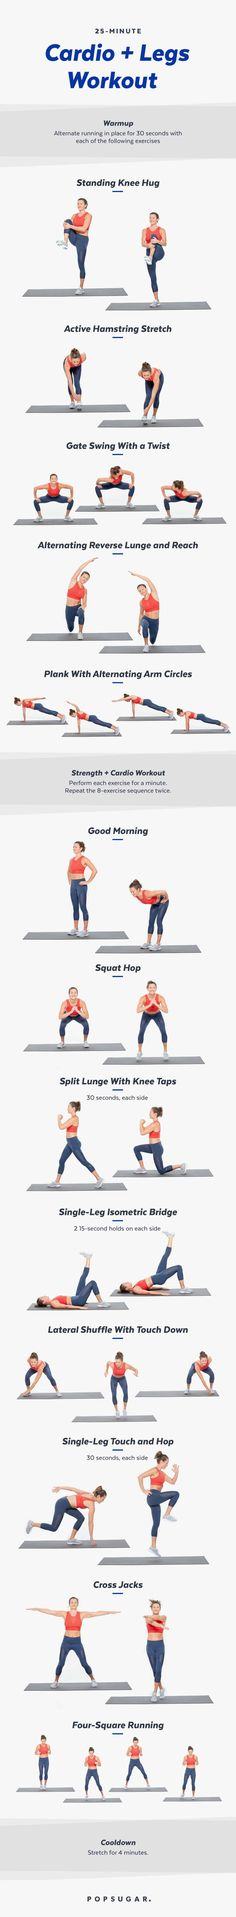 Cardio workout you can do at home! Bonus, we've thrown some leg-toning moves into the mix for a strong, killer lower body.